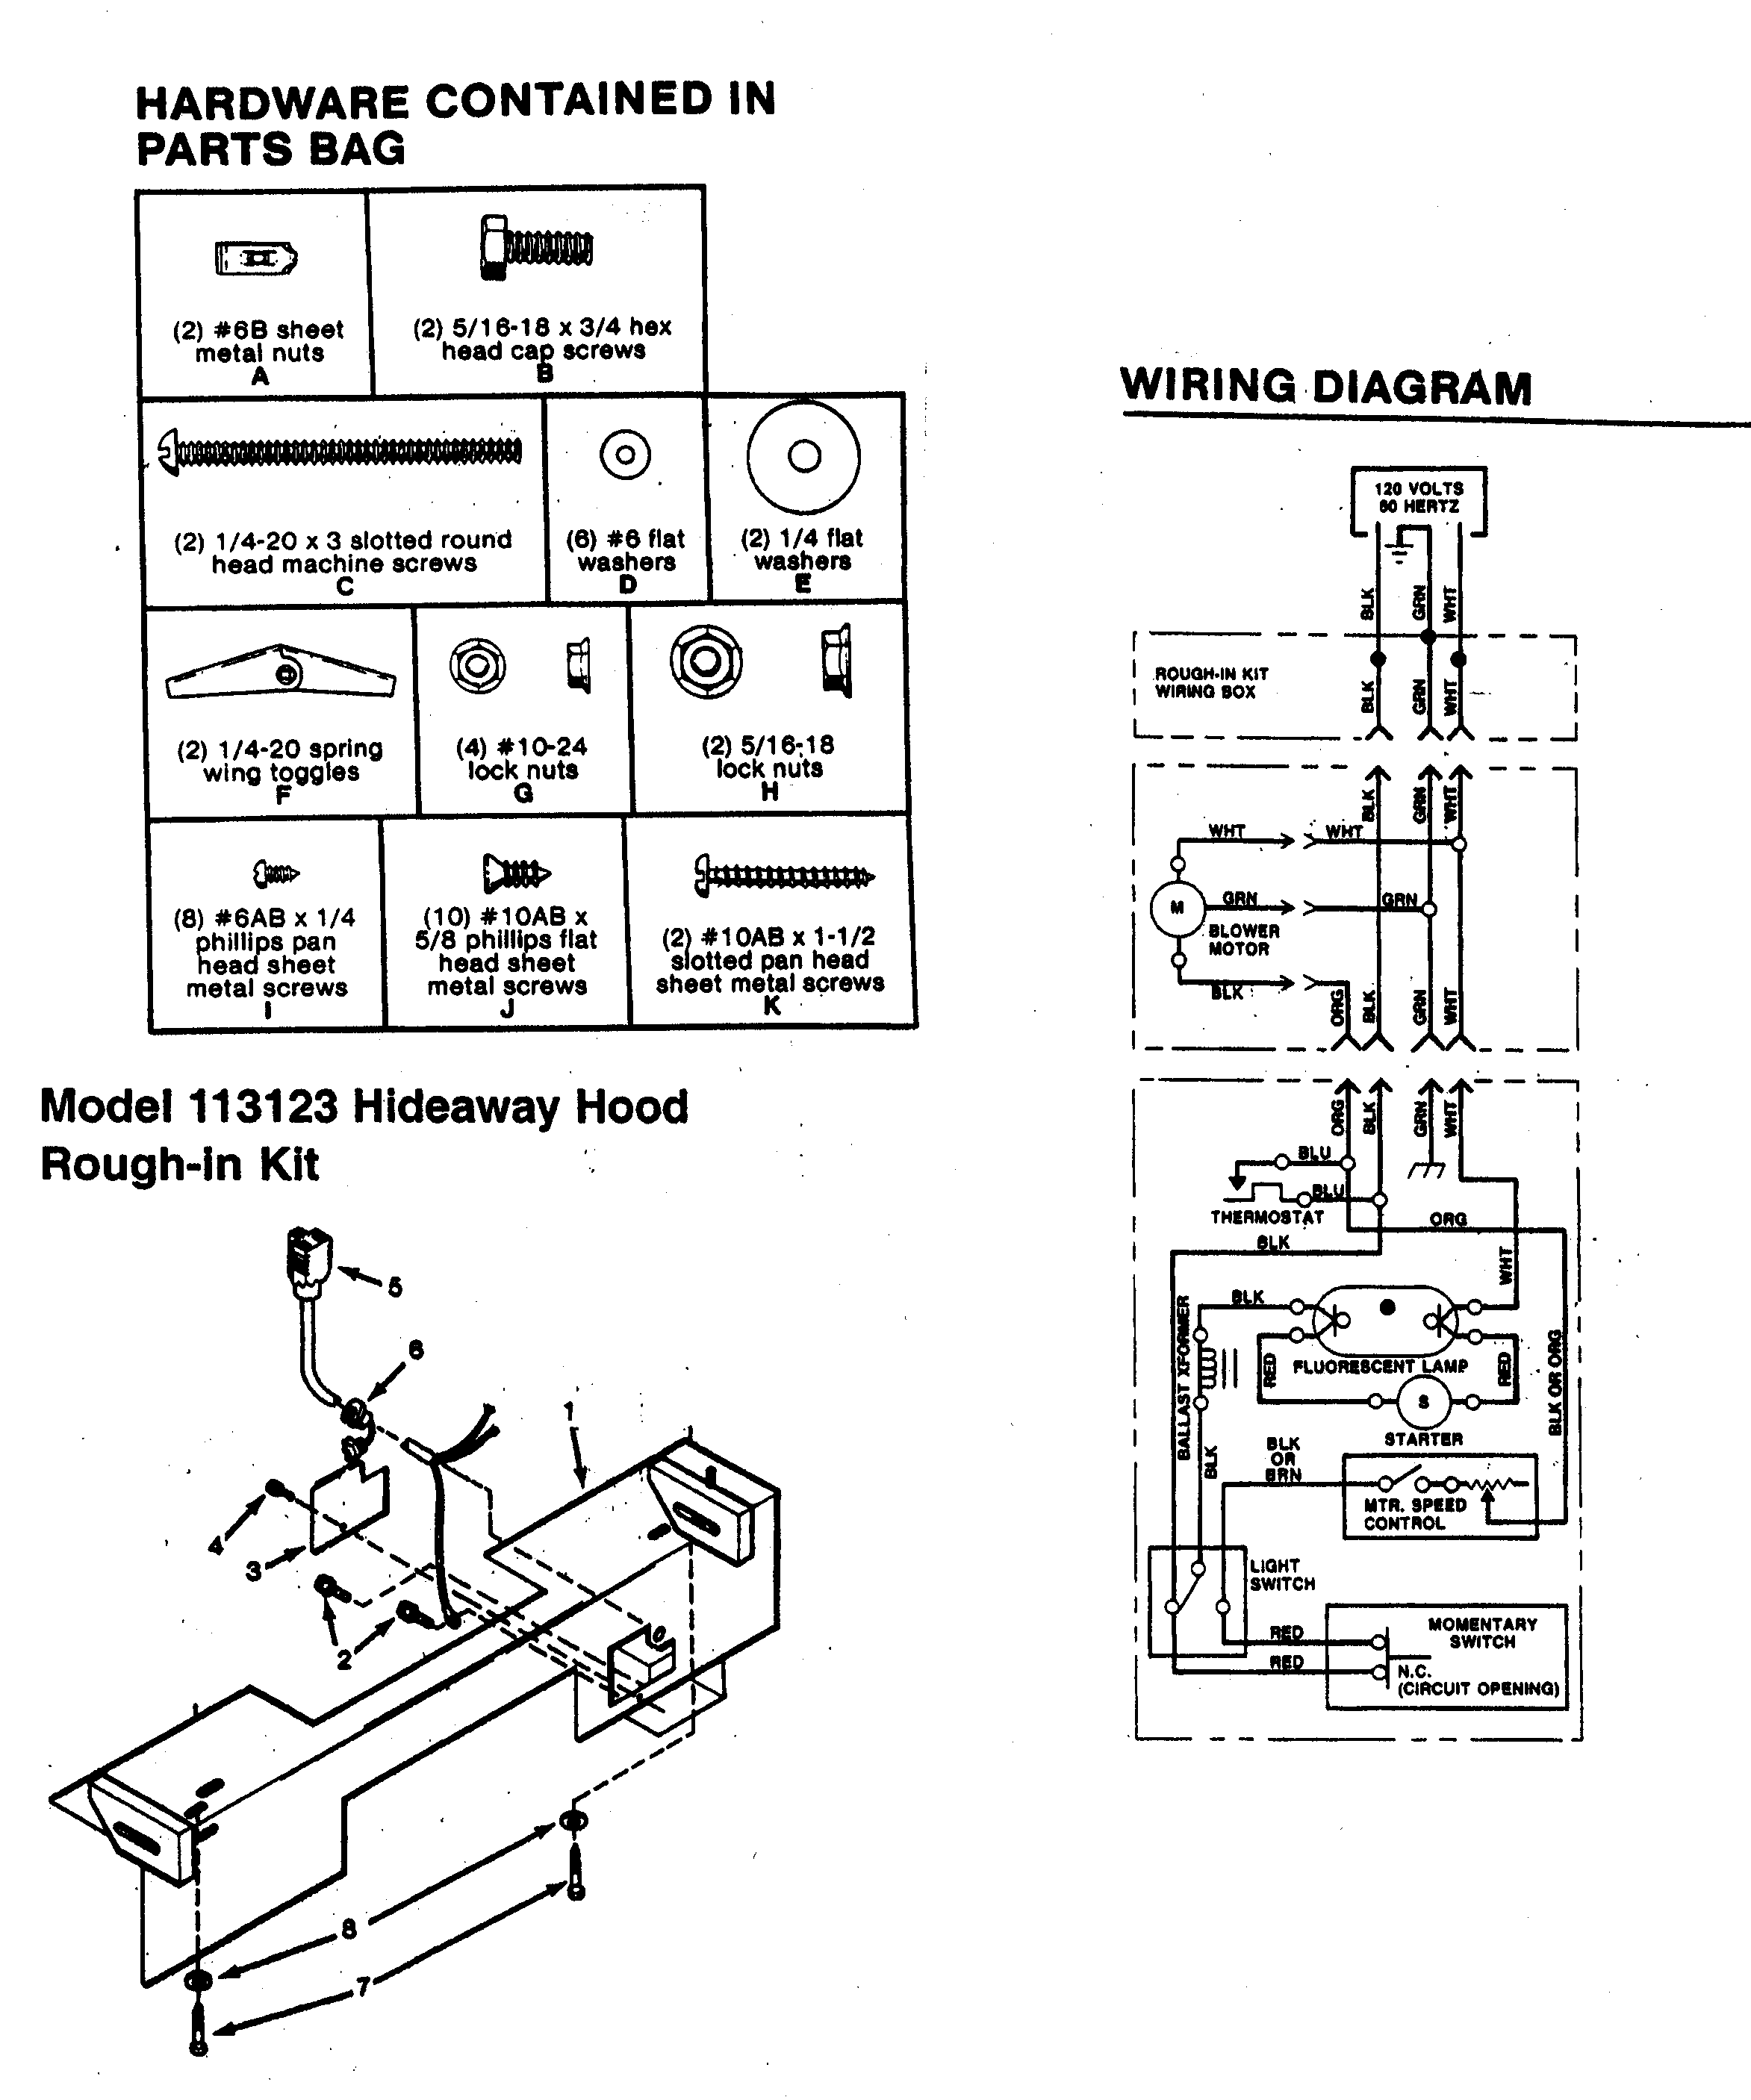 50026113 00002?resize\\=665%2C797 nutone heater wiring diagram hunter wiring diagram, danby wiring wiring diagram for nutone intercom at n-0.co